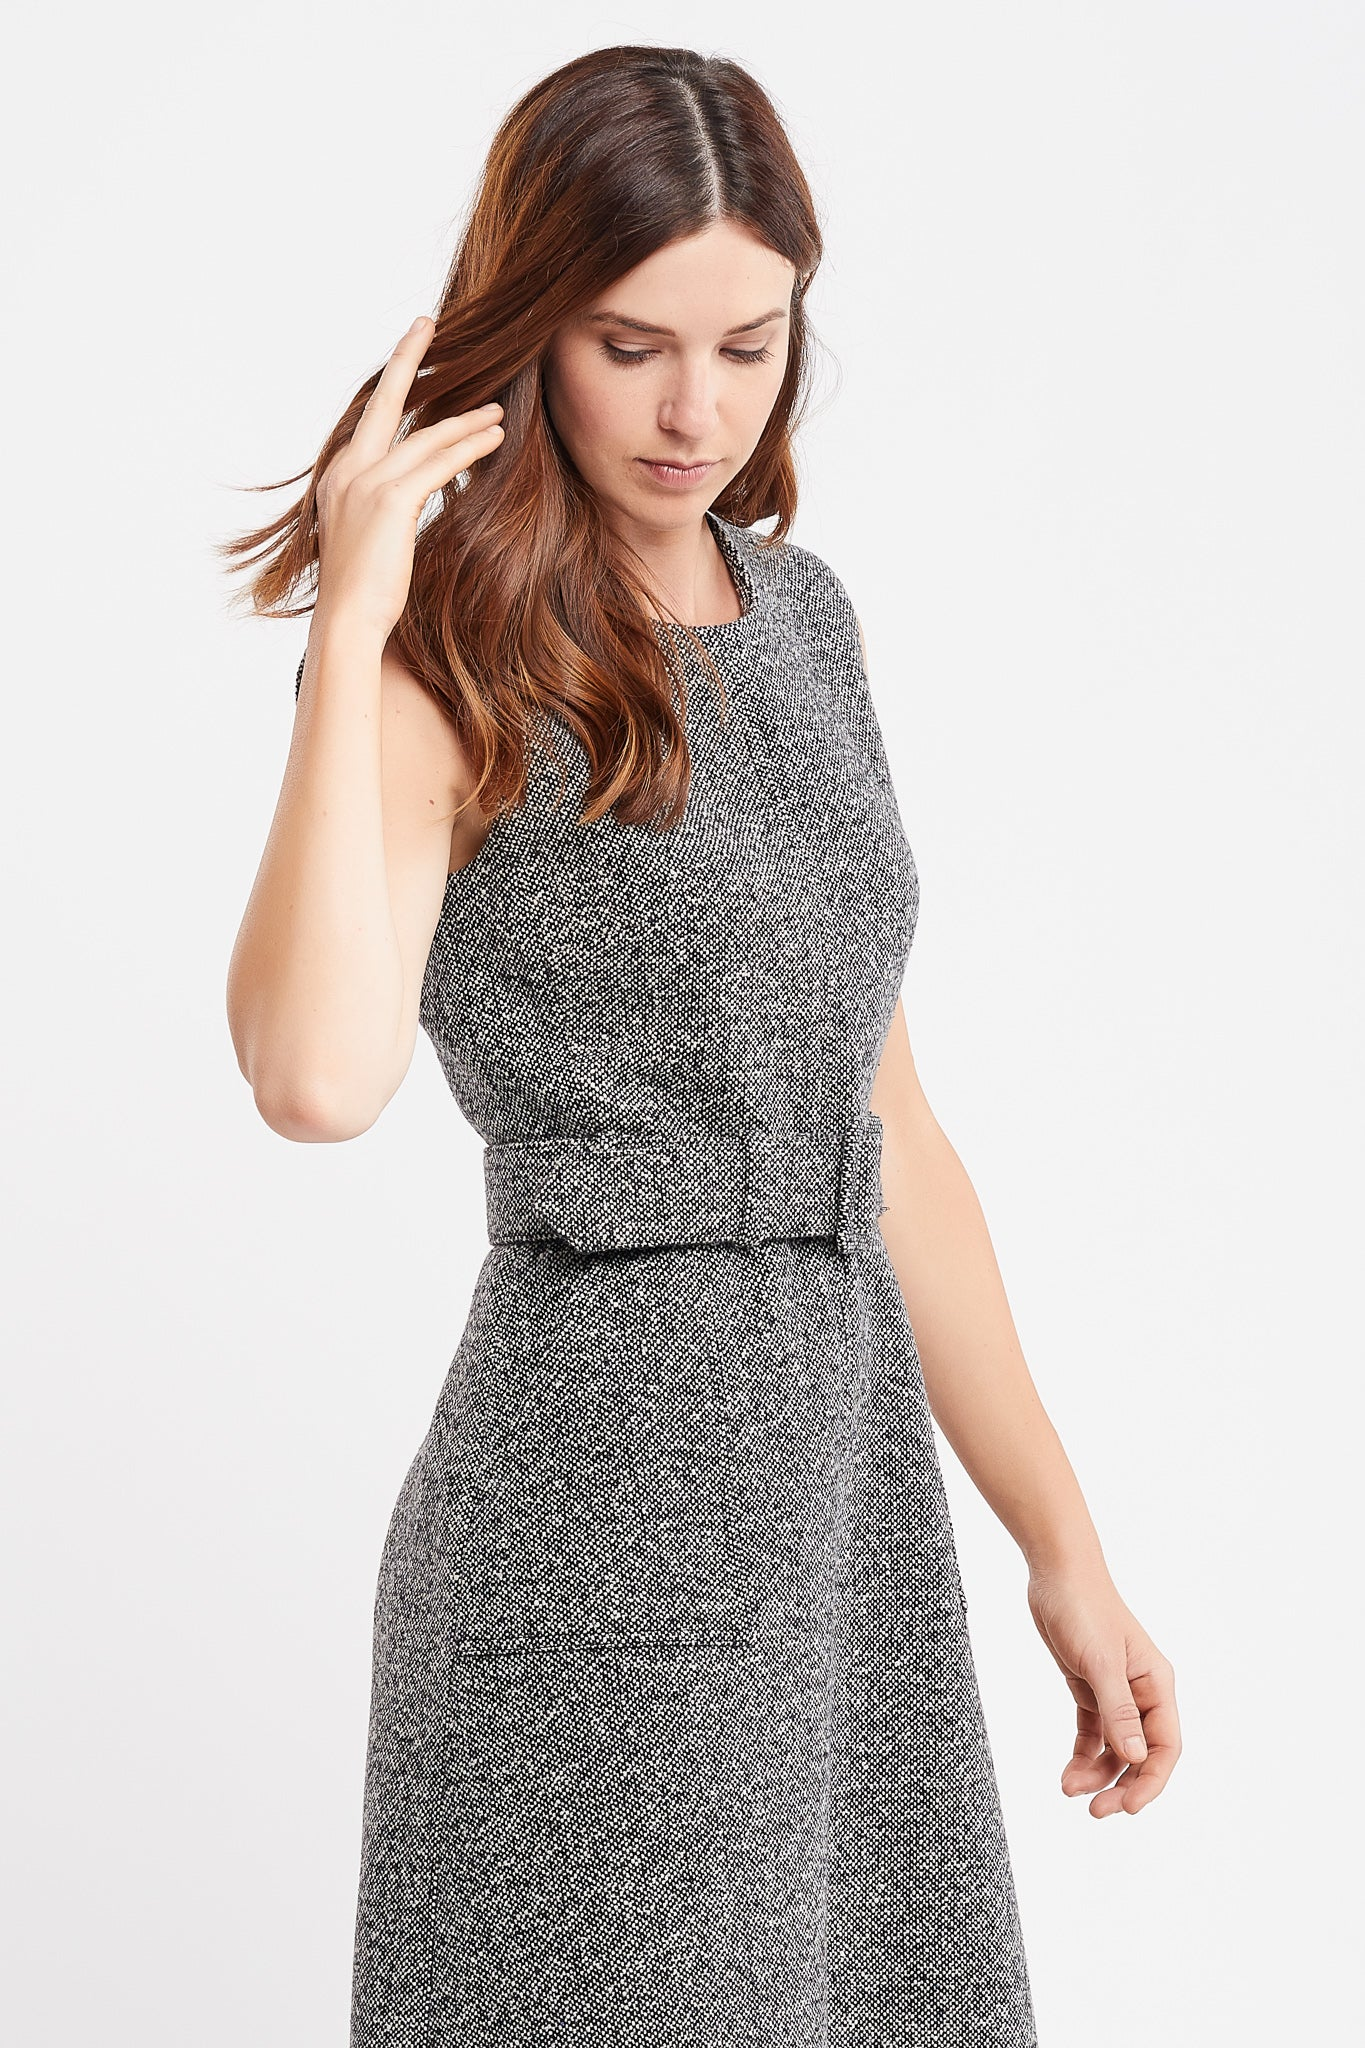 Jordanne Sleeveless A-line Black Tweed Work Dress